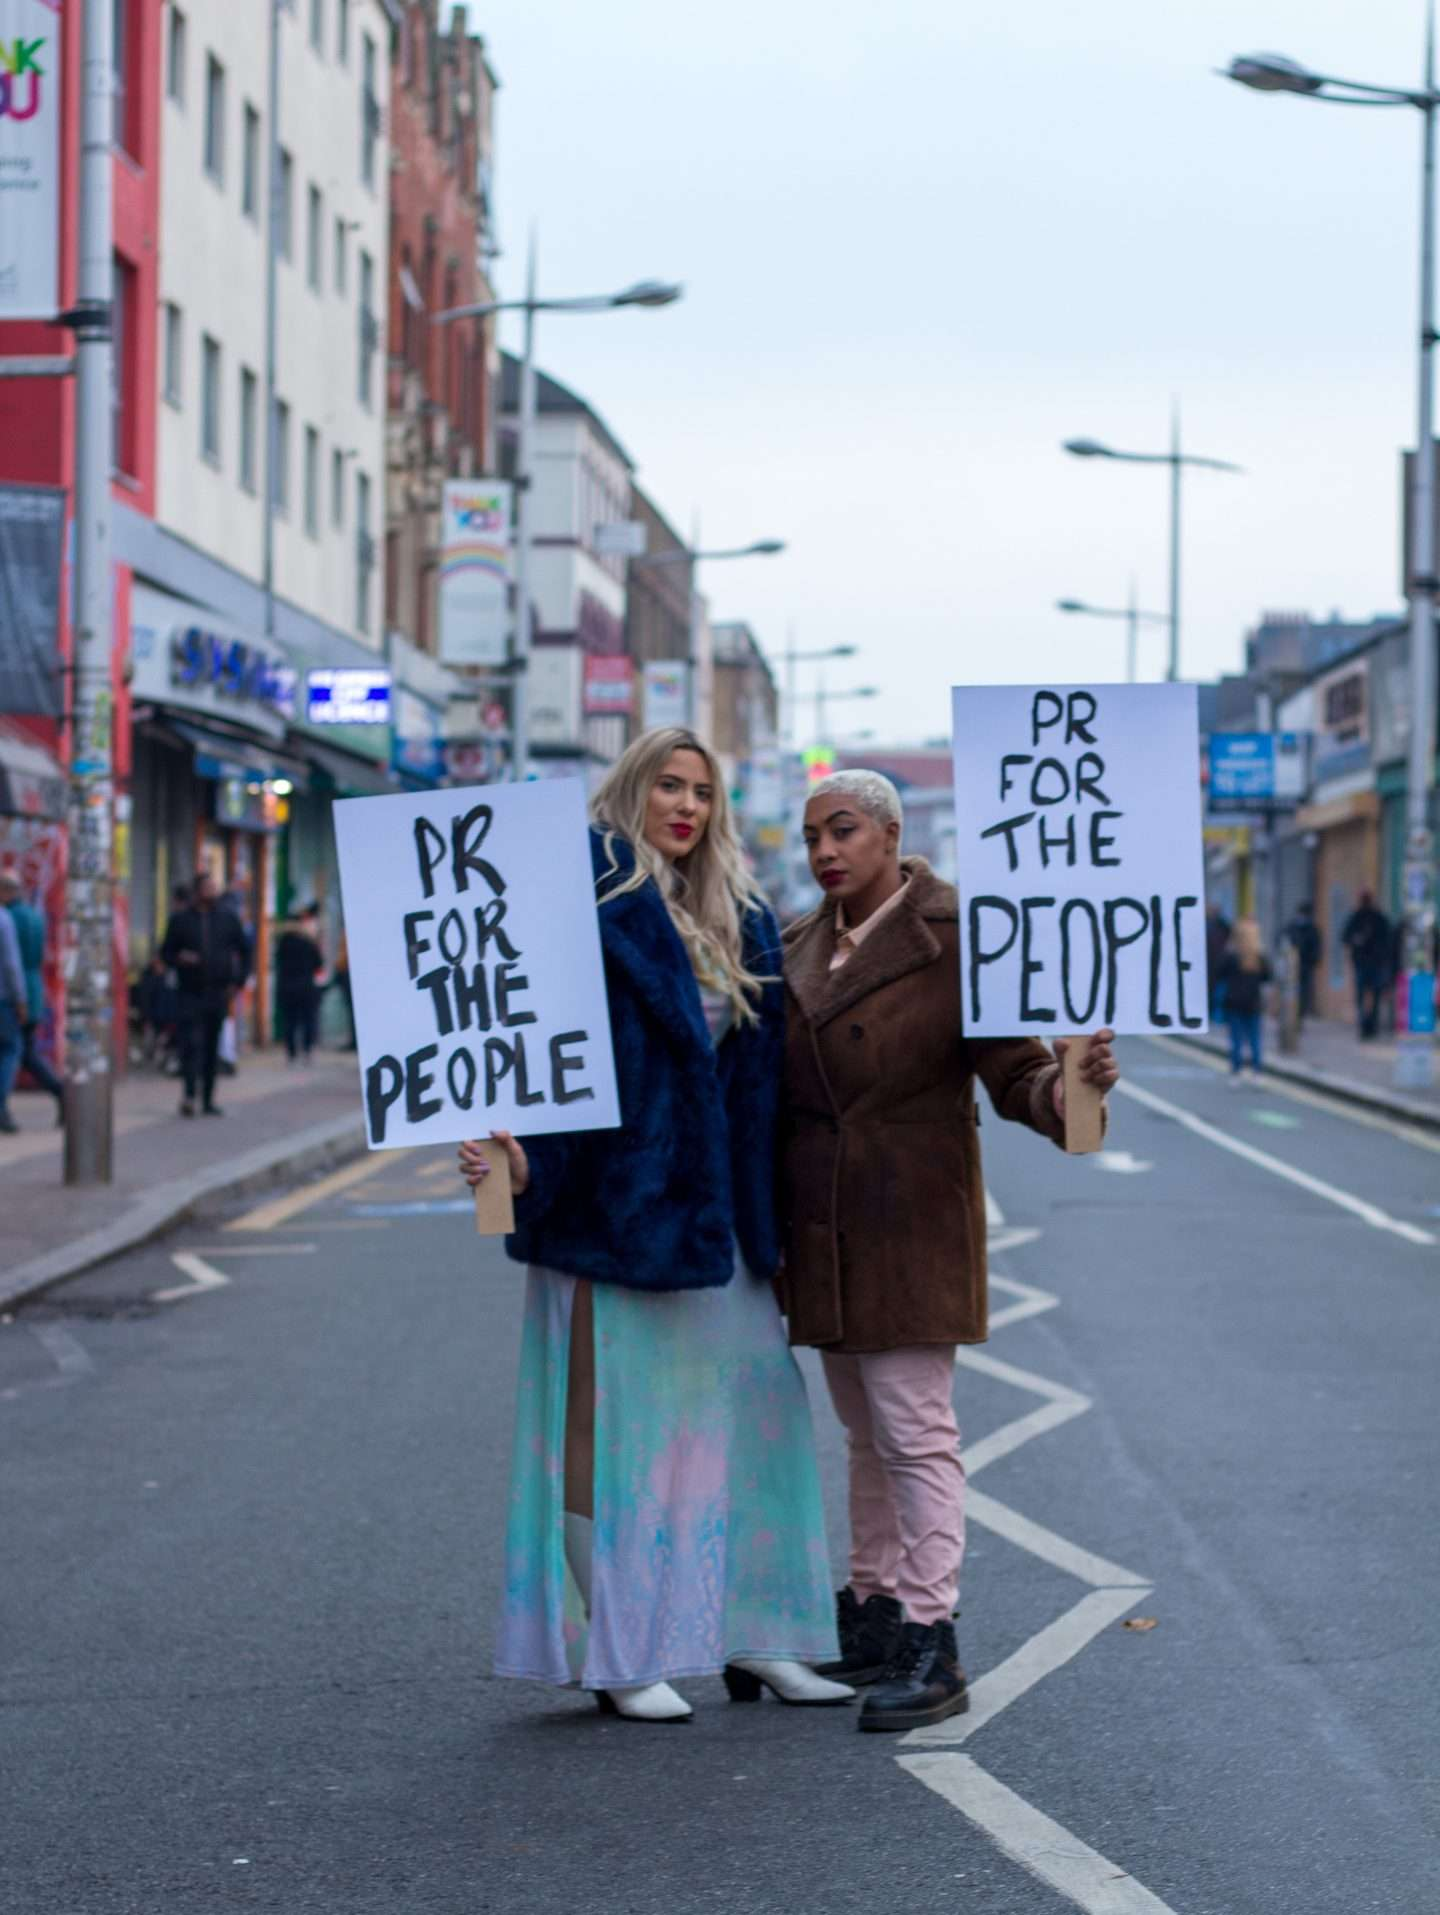 pr for the people with banners in street